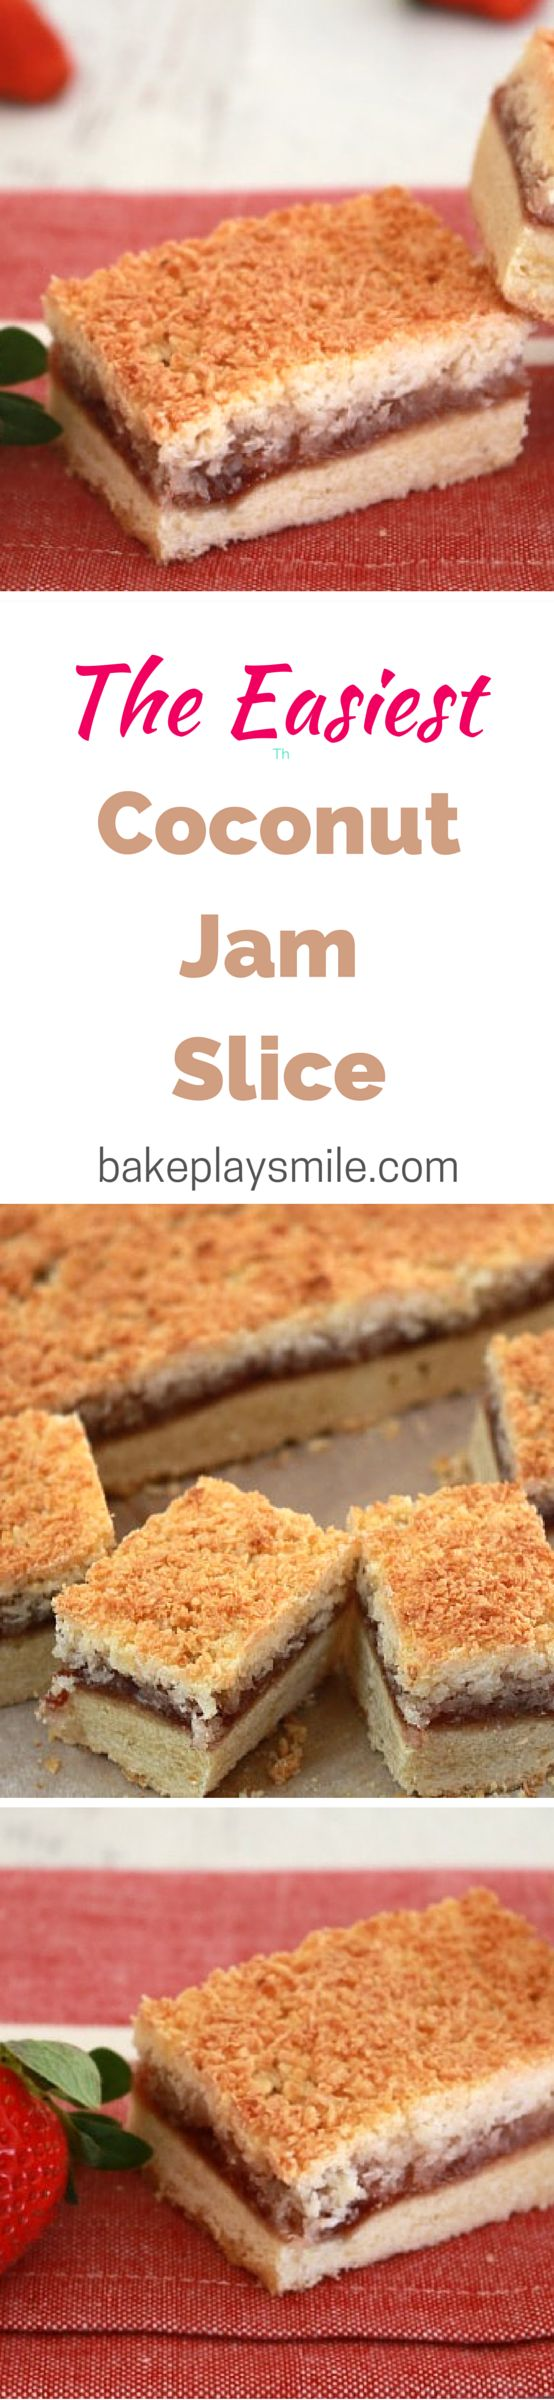 This was always one of my favourite slices growing up - it's such a classic recipe! #coconut #jam #slice #recipe